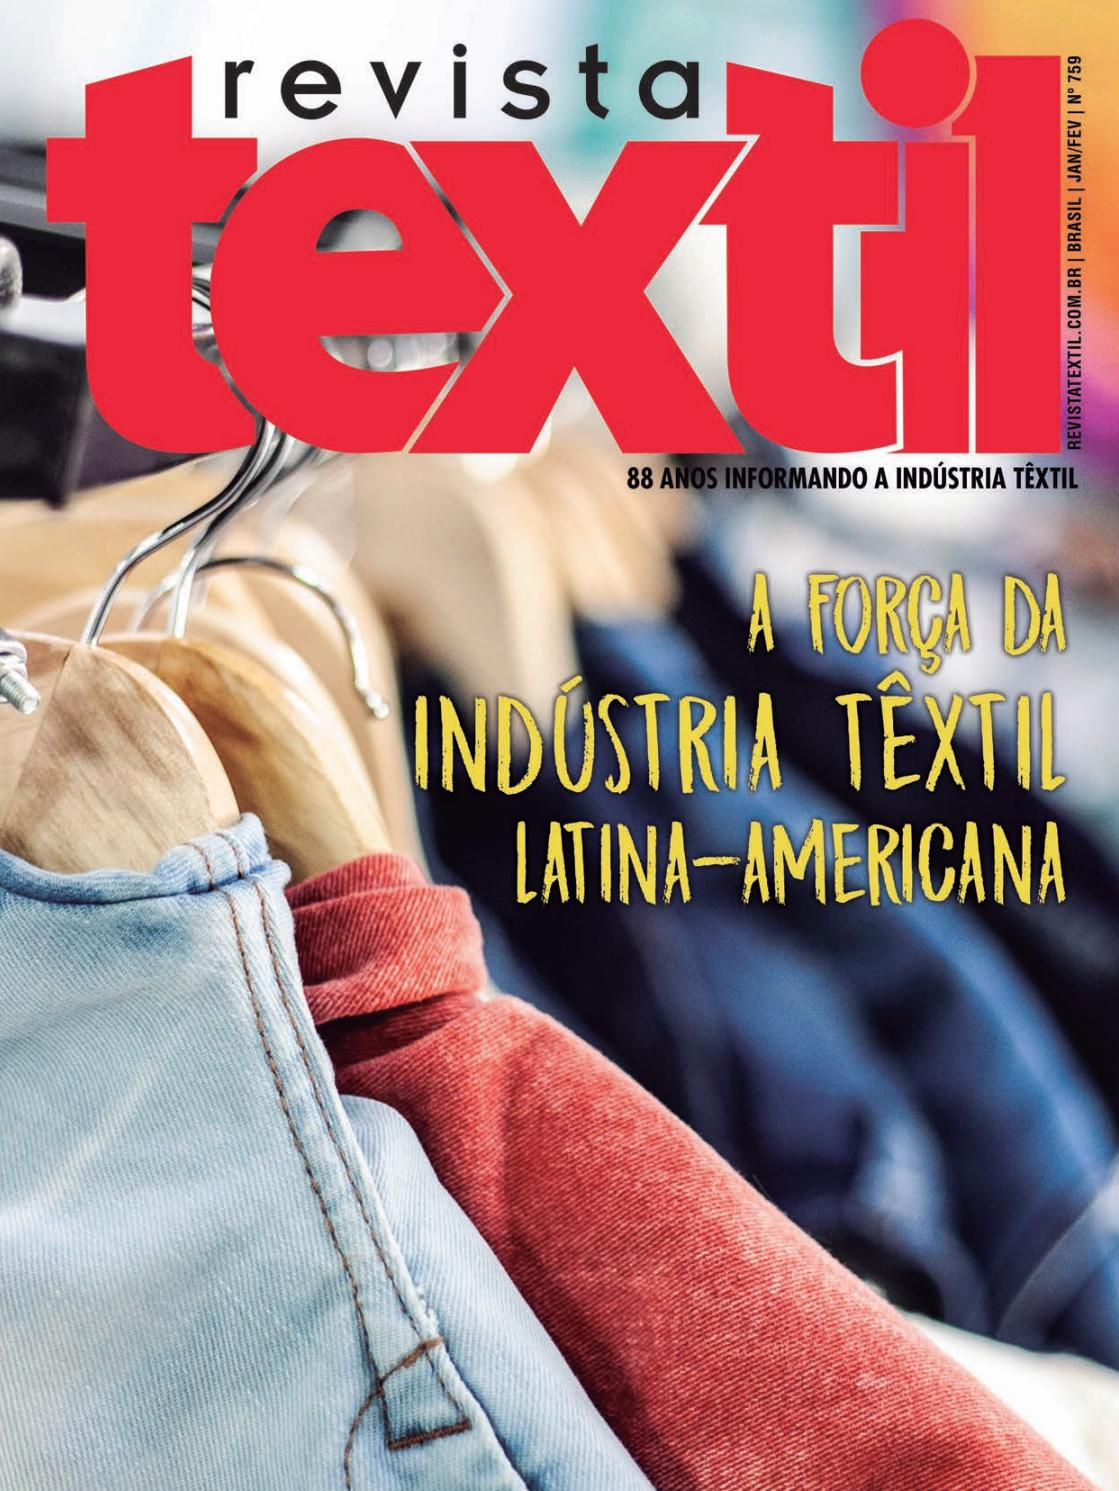 ca62566c9e0d REVISTA TEXTIL 759 by Revista Textil - issuu